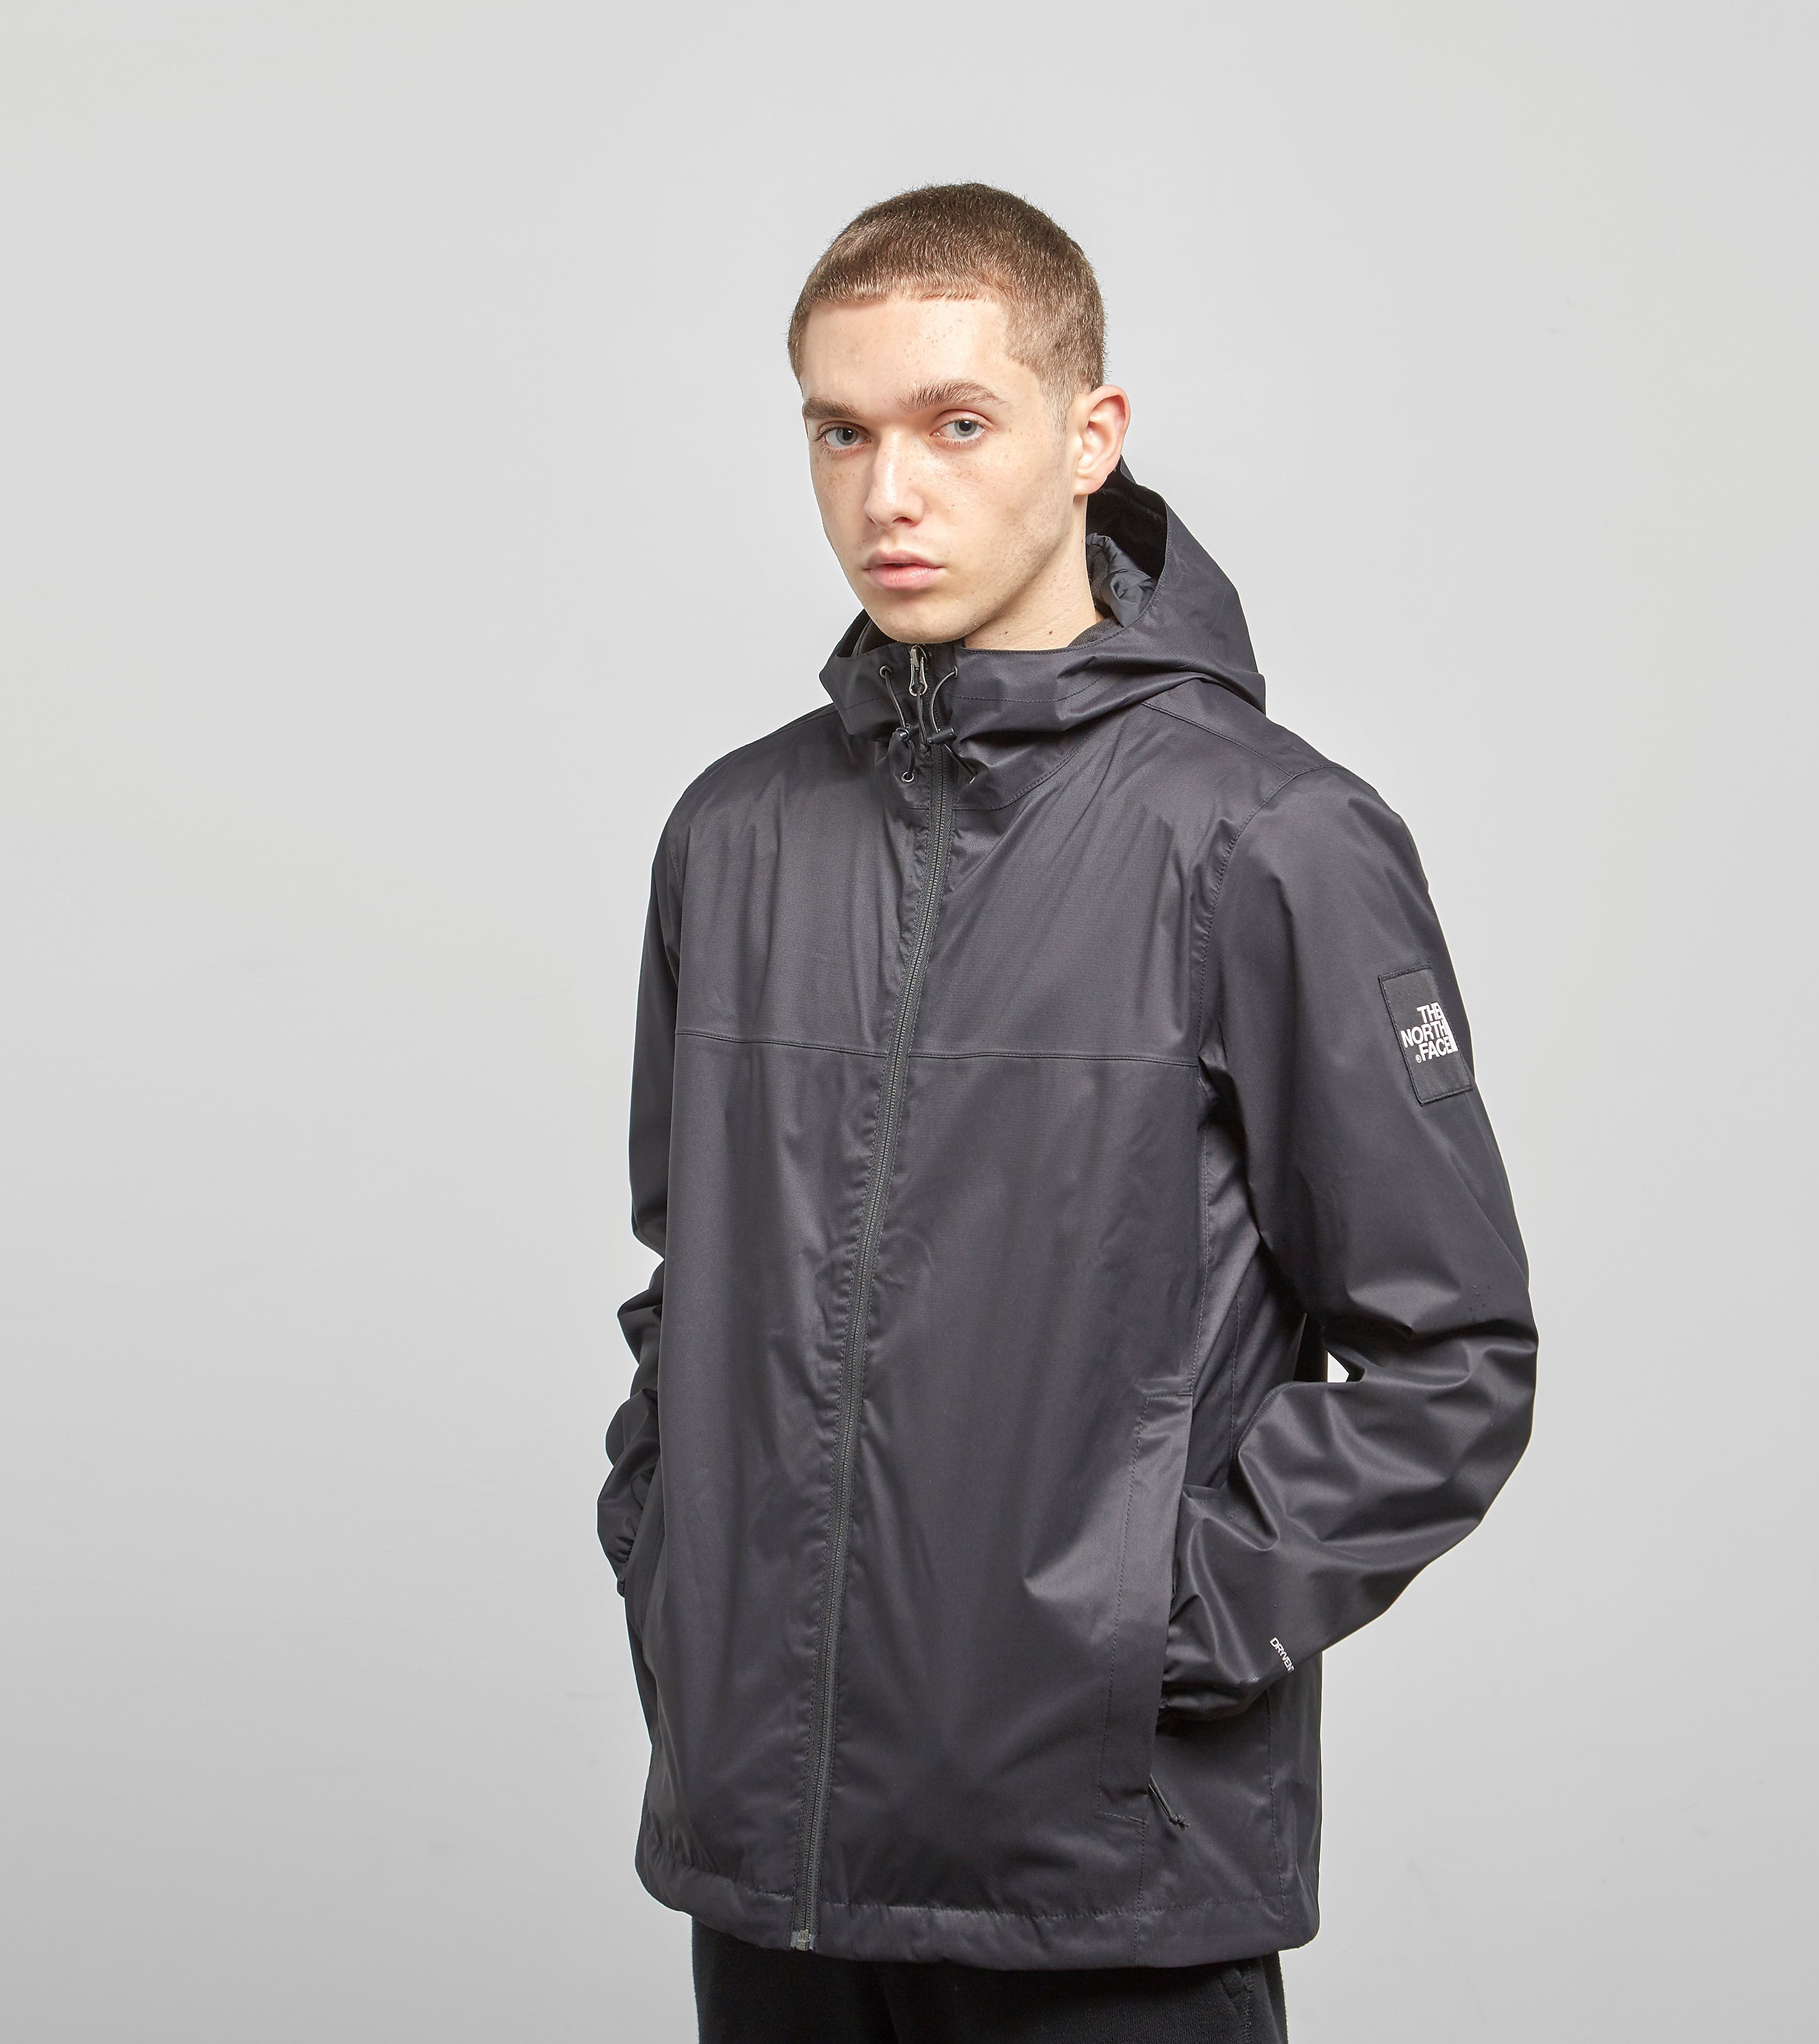 The North Face Black Label Mountain Jacket